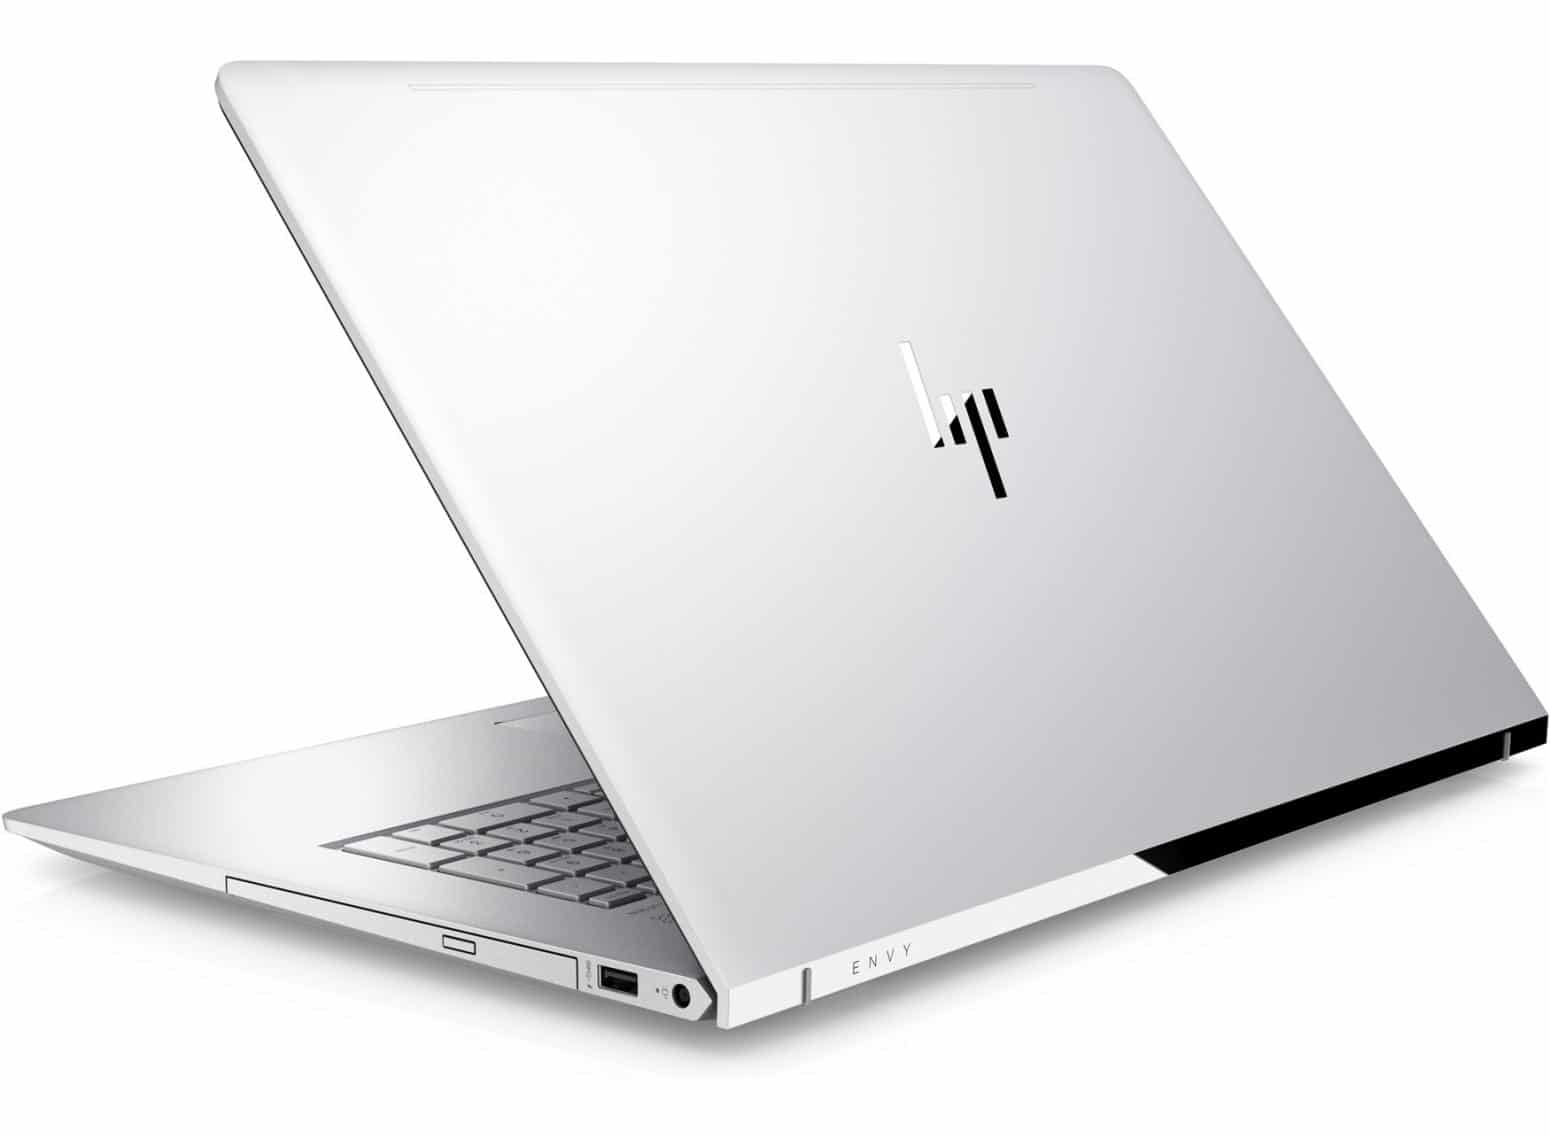 "HP Envy 17-ae107nf, PC portable 17"" fin 4K IPS SSD512 i7 MX150 (1738€)"